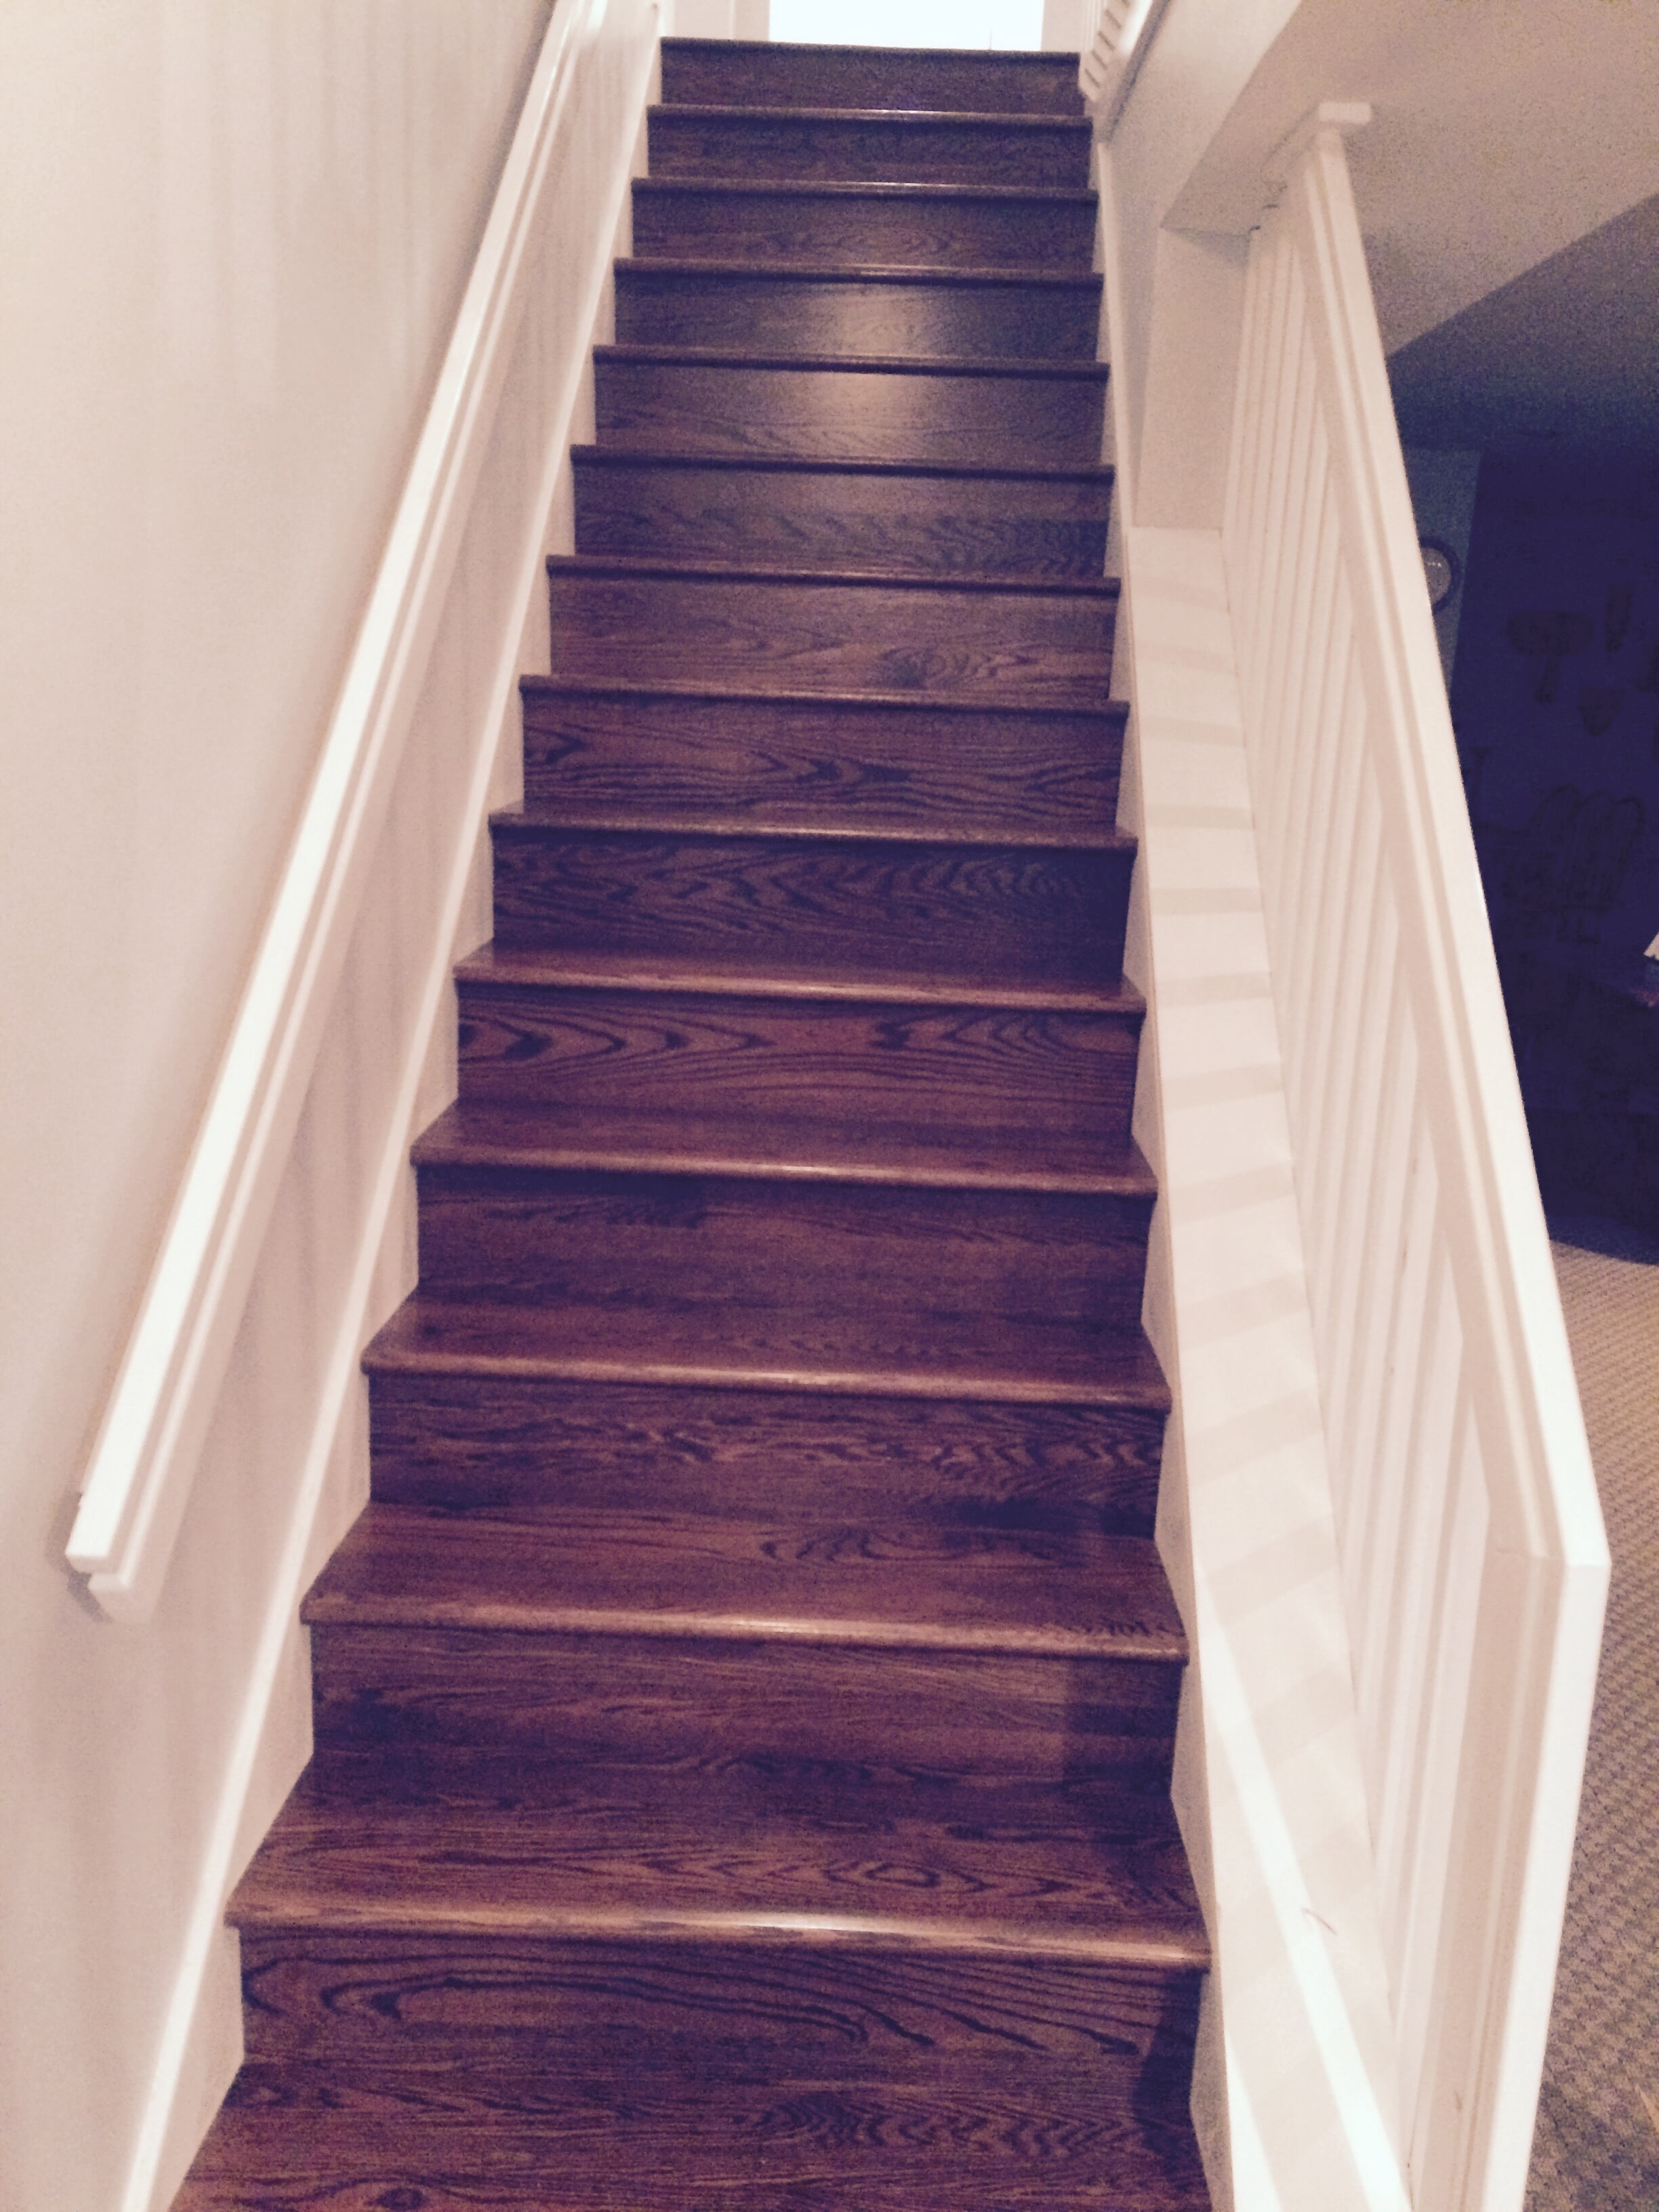 Hardwood refinishing by All Surface Flooring servicing Wildwood MO